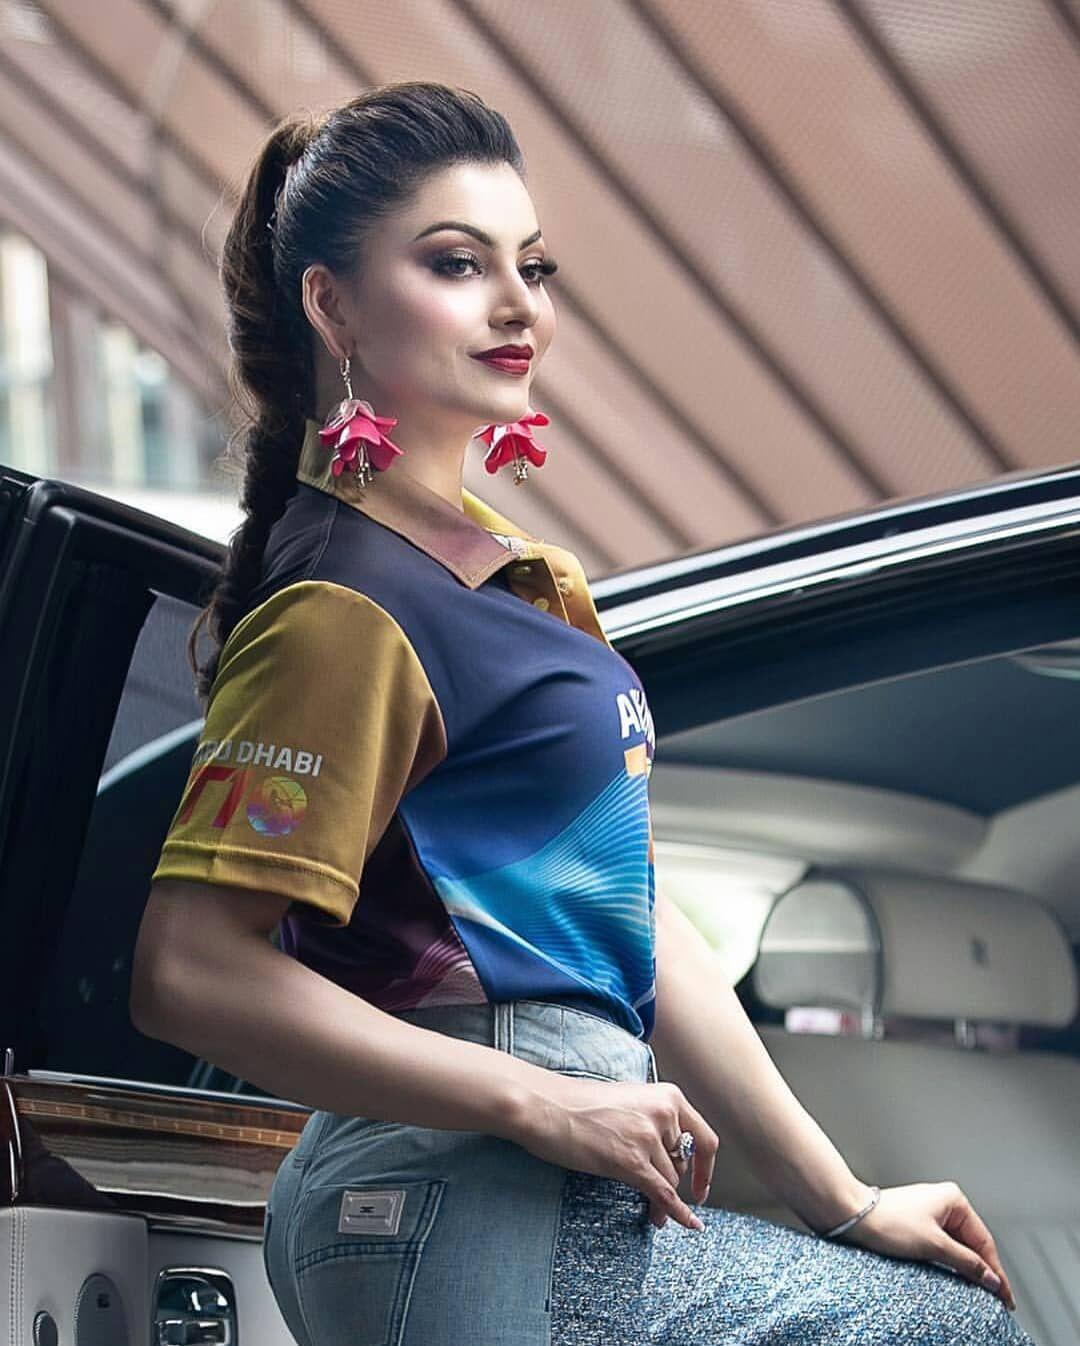 Urvashi Rautela inaugurating T10 match at Abu Dhabi